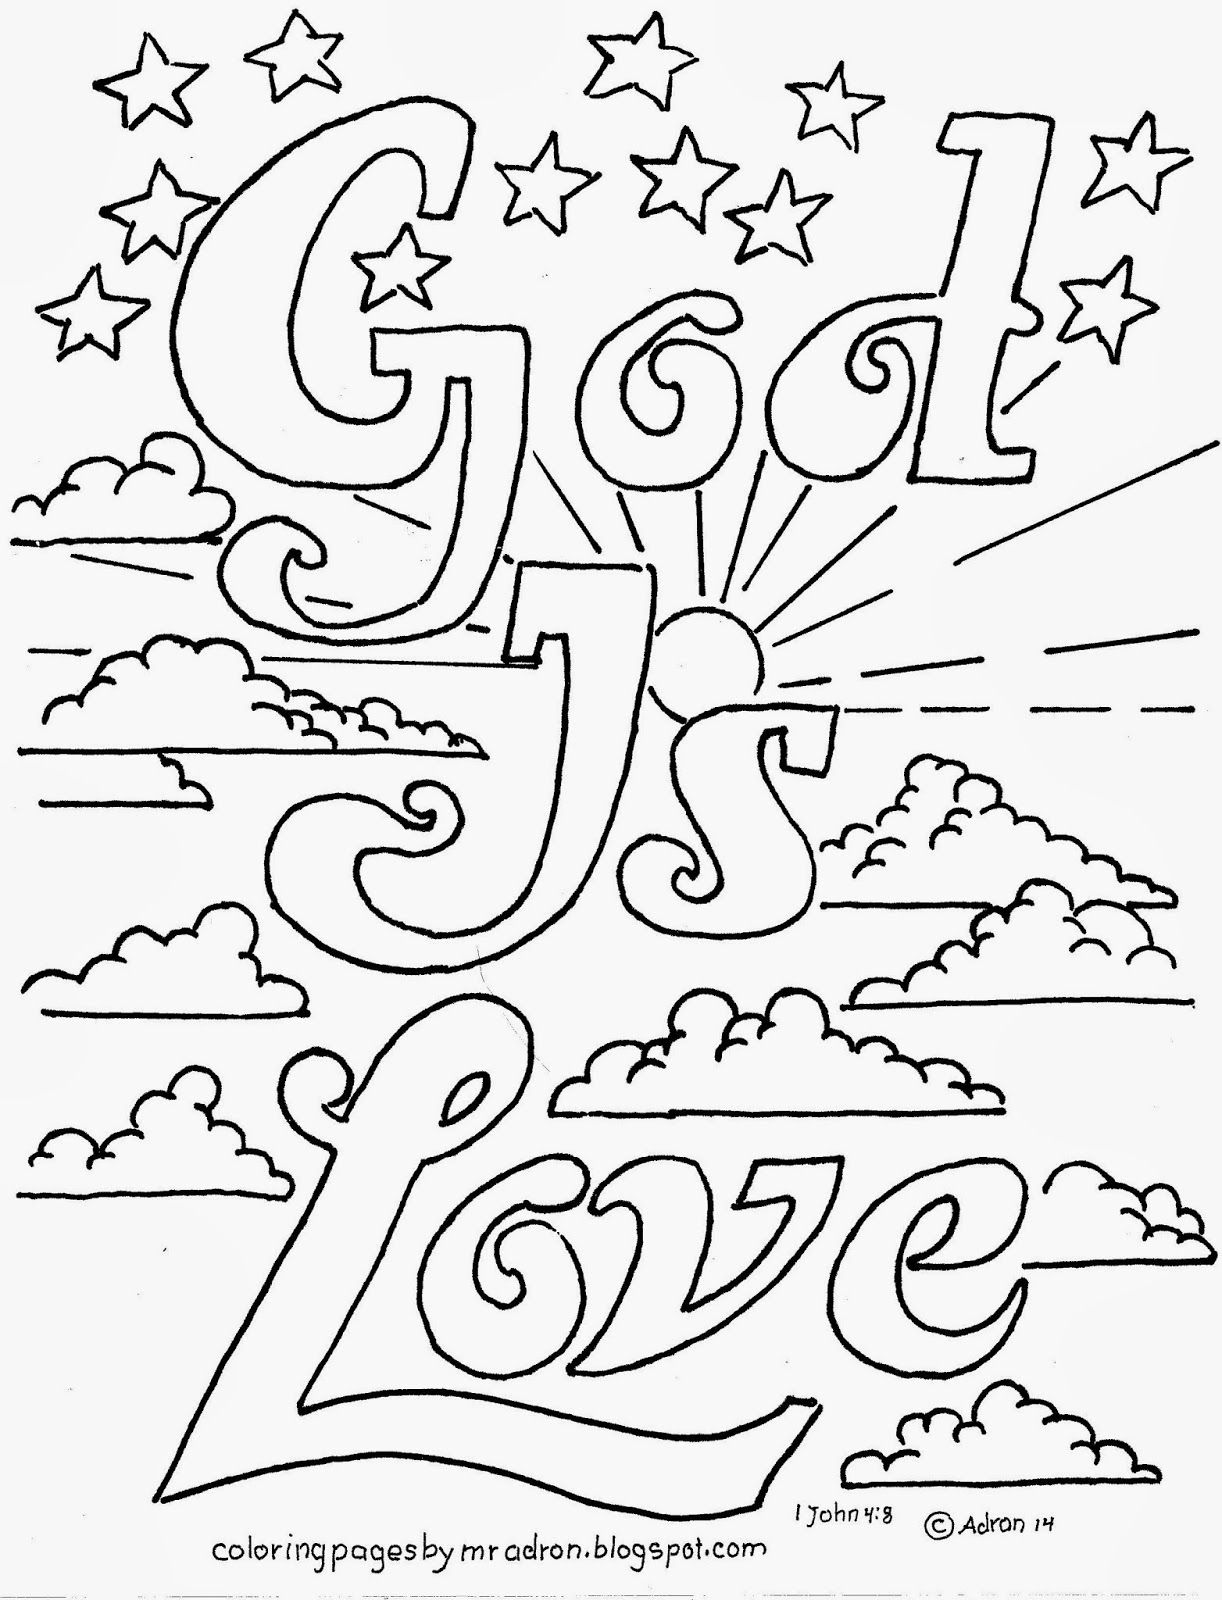 bible coloring pages for preschoolers free printable bible coloring pages free homeschool deals preschoolers coloring for bible pages